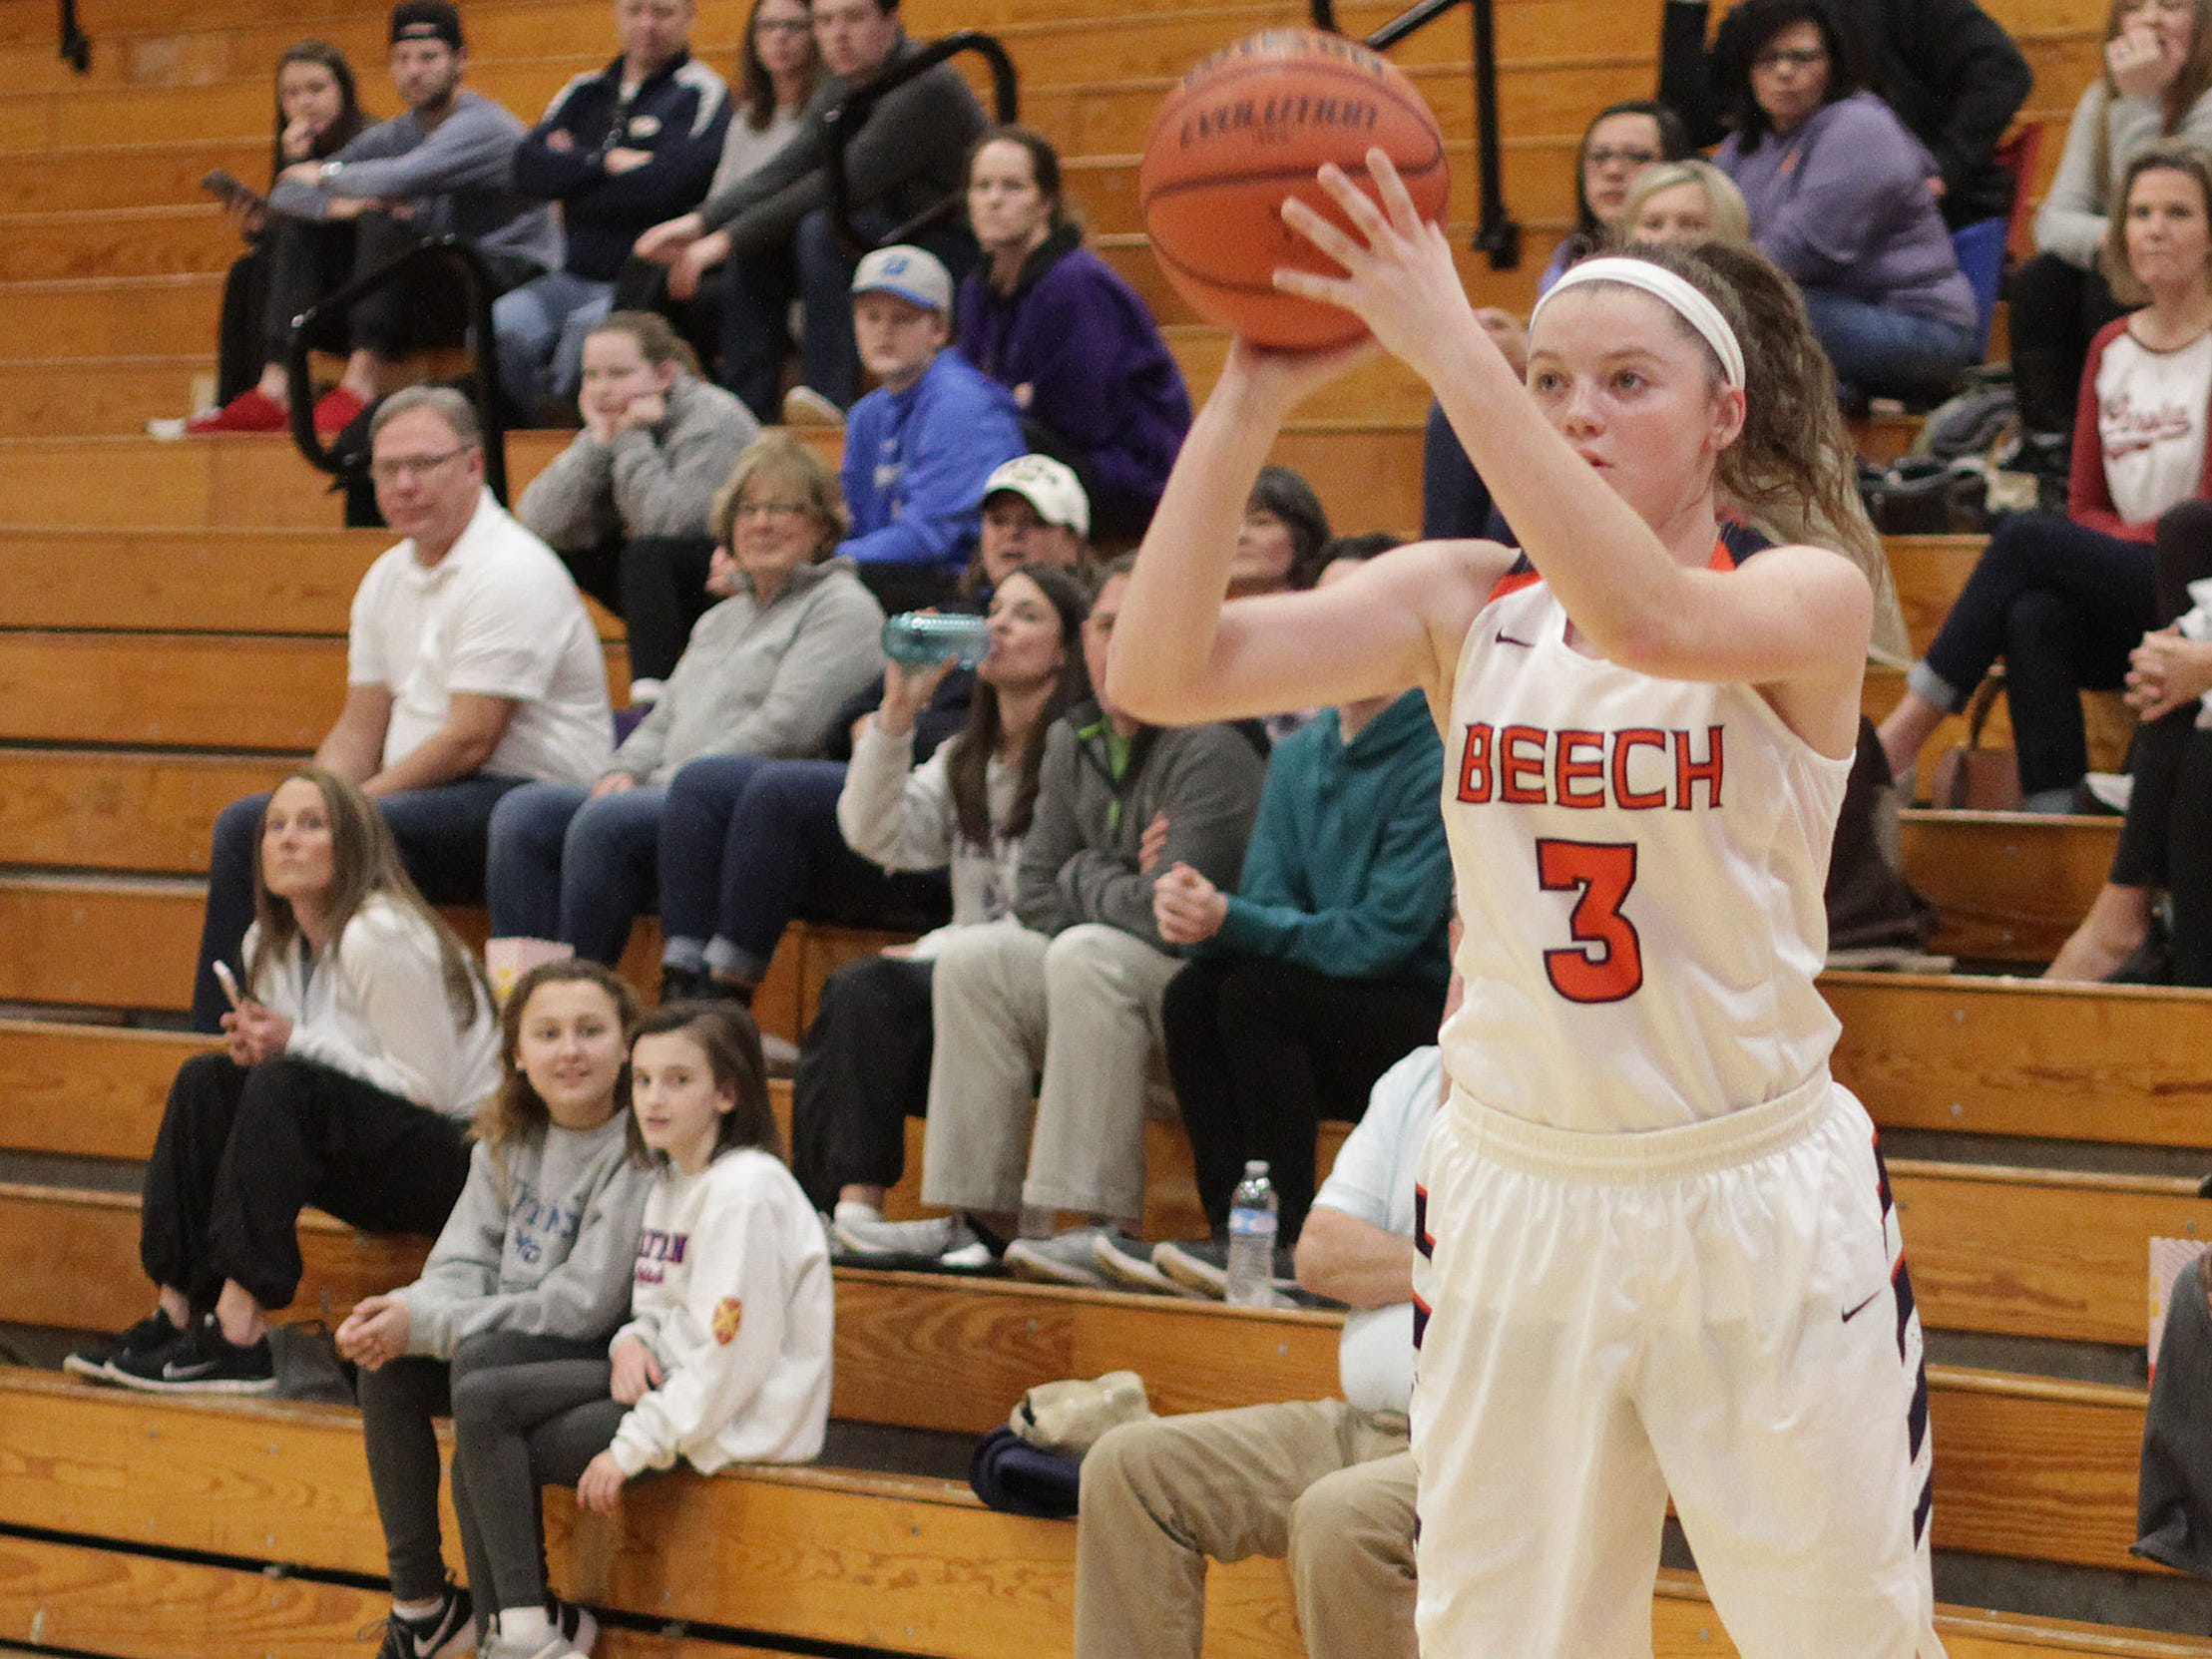 Beech's Jana Claire Swafford shoots for three against Father Ryan on Saturday, December 29, 2018.